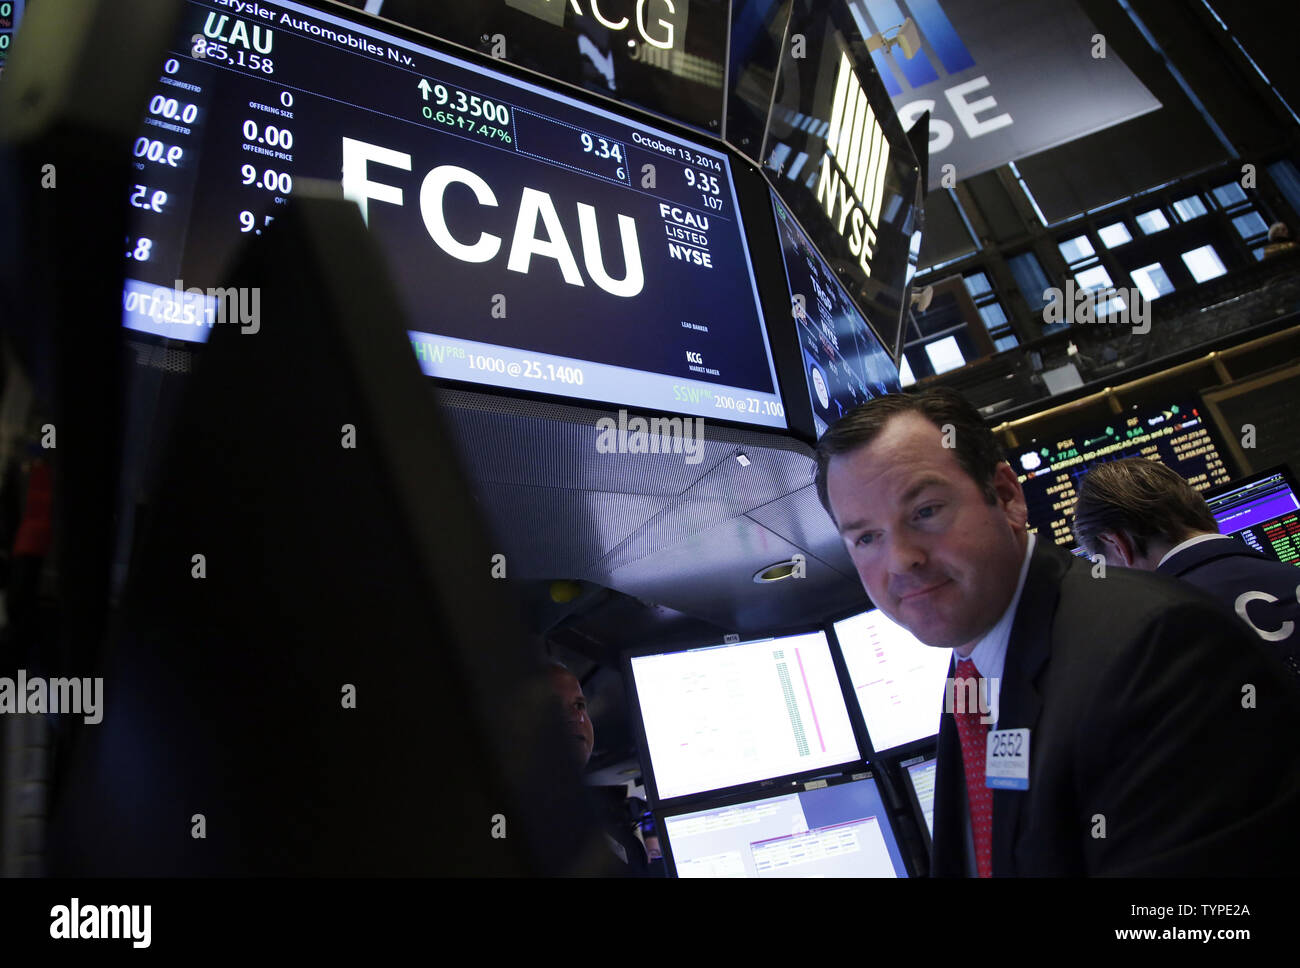 Traders work after Fiat Chrysler Automobiles begins trading for the first time on the New York Stock Exchange at the opening bell on Wall Street in New York City on October 13, 2014. Fiat Chrysler Automobiles began trading on the New York Stock Exchange on Monday under the symbol FCAU.     UPI/John Angelillo Stock Photo